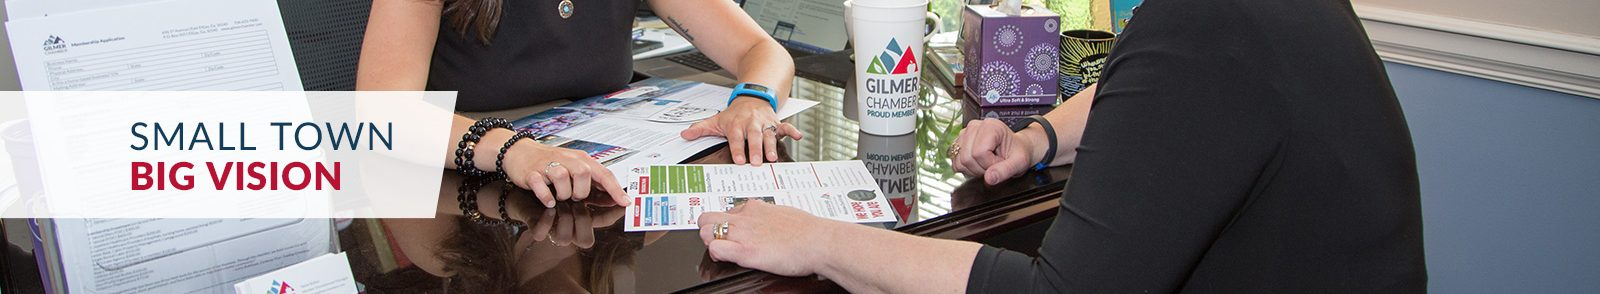 chamber-1-1600x294 February Business Connections - Gilmer County Chamber of Commerce